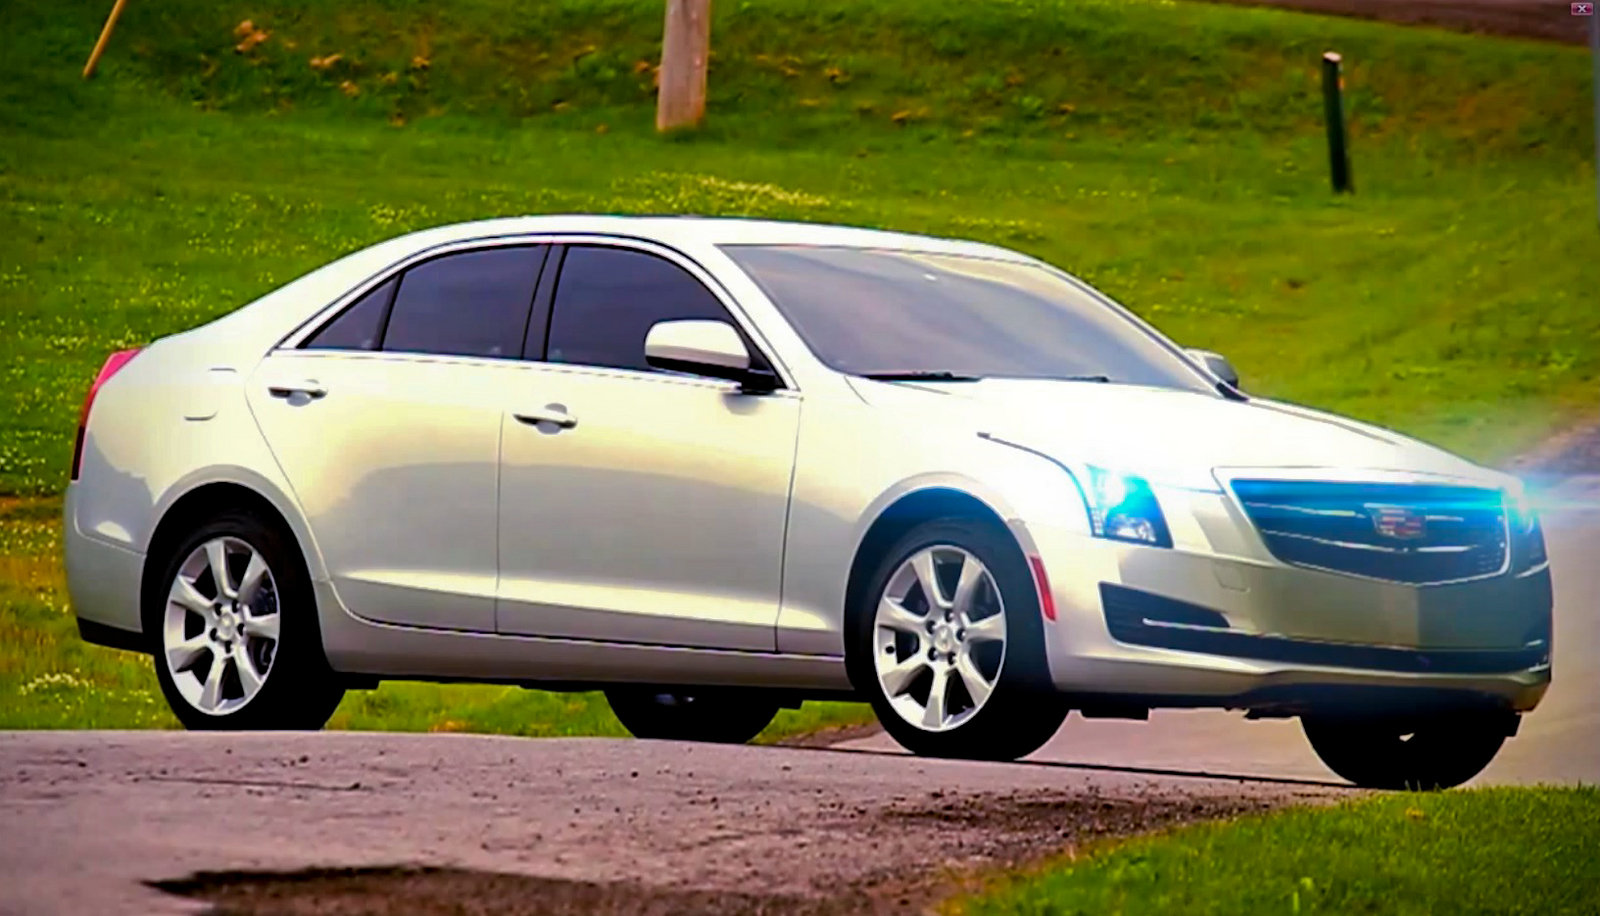 2015 cadillac ats sedan picture 558269 car review top speed. Black Bedroom Furniture Sets. Home Design Ideas